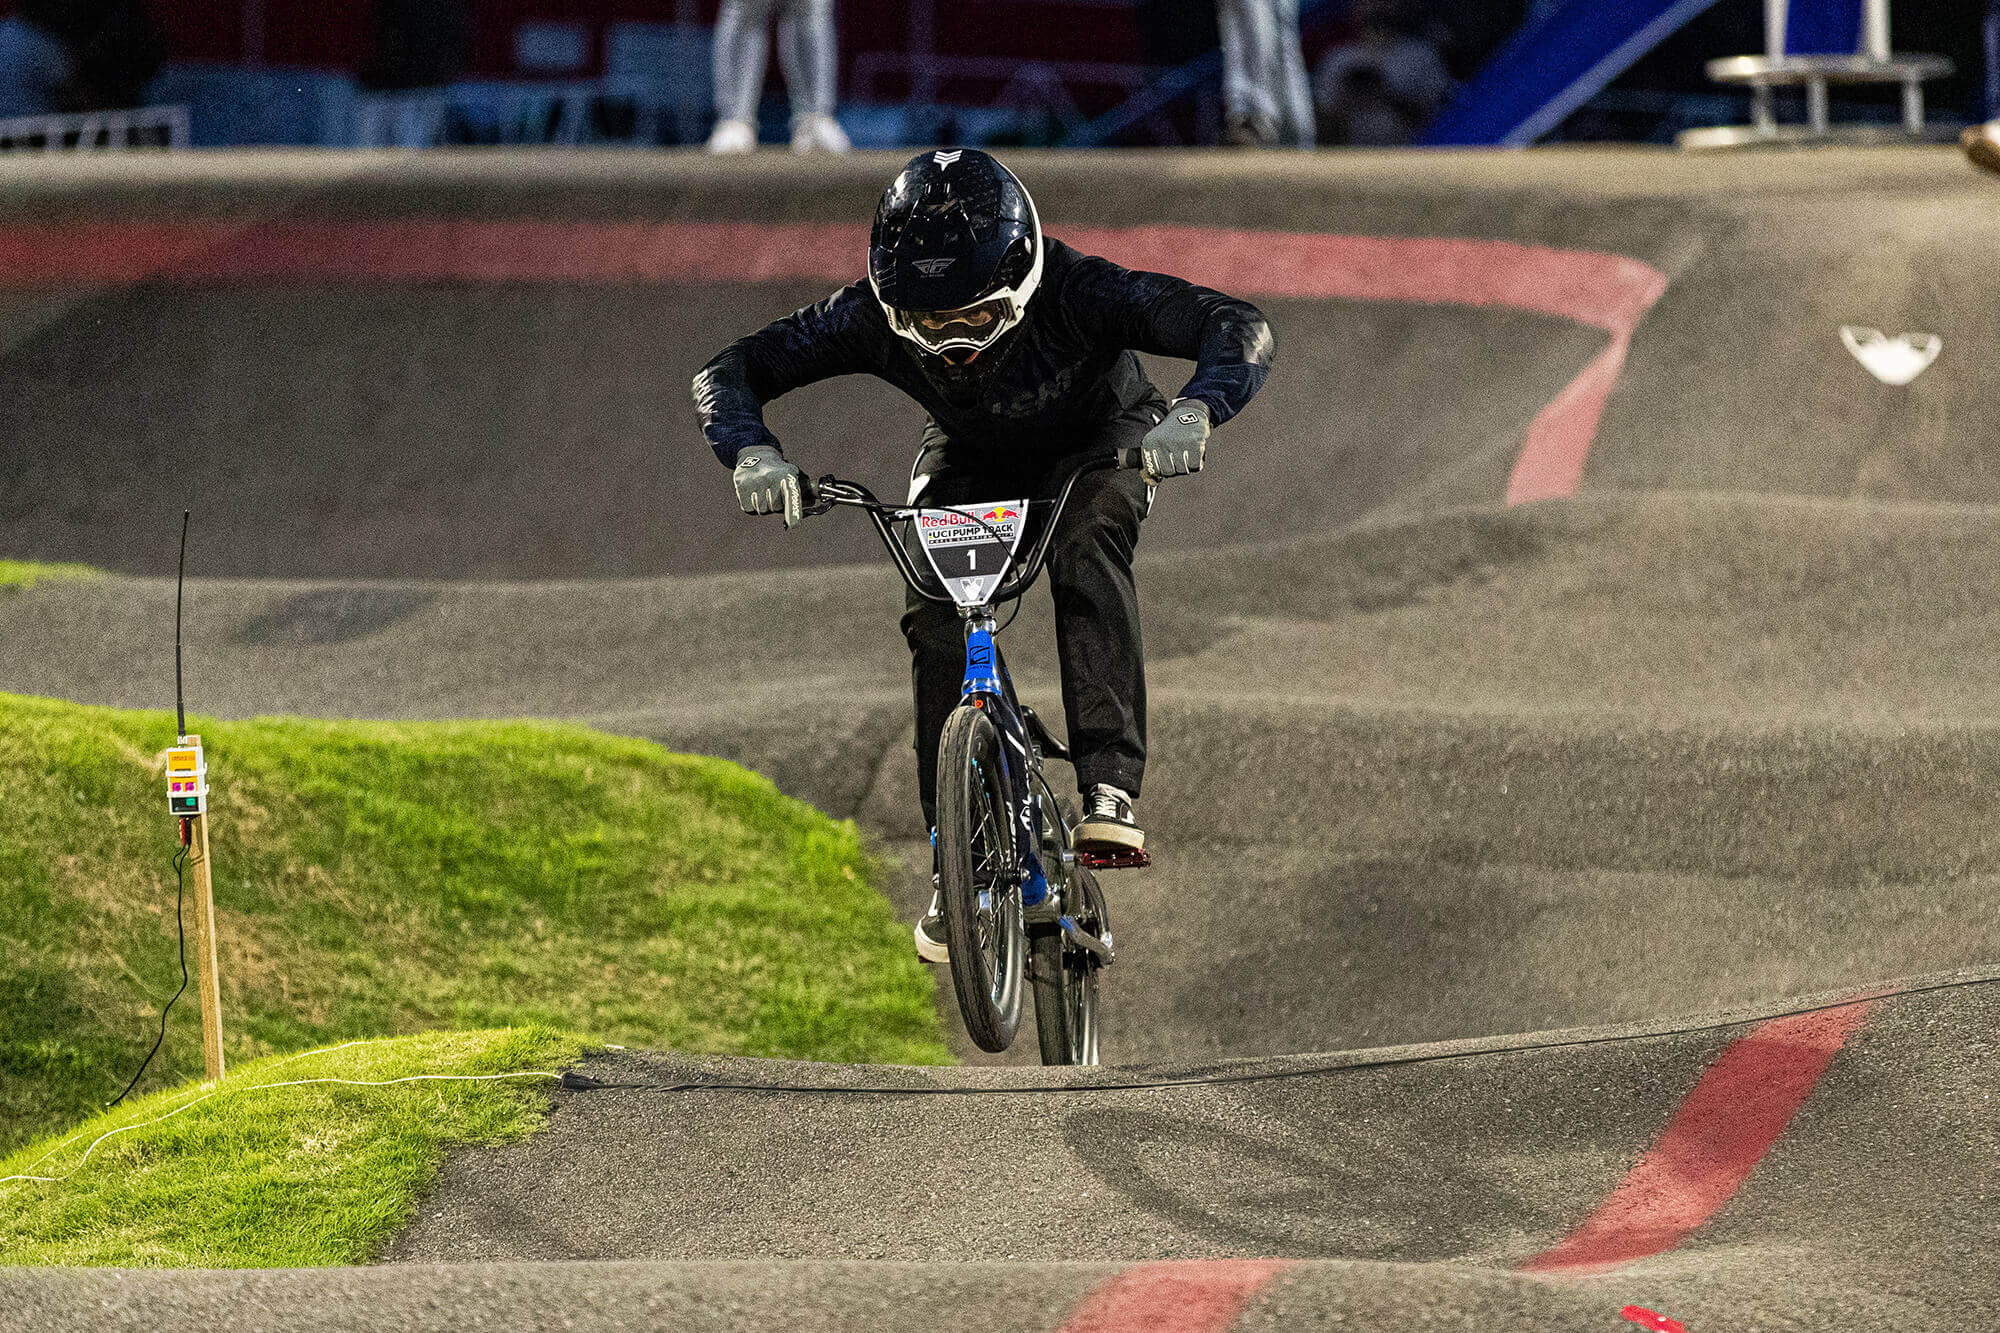 Red Bull Pump Track Qualifier Gaston County May 2021 - Brian Hall - ATL-0104